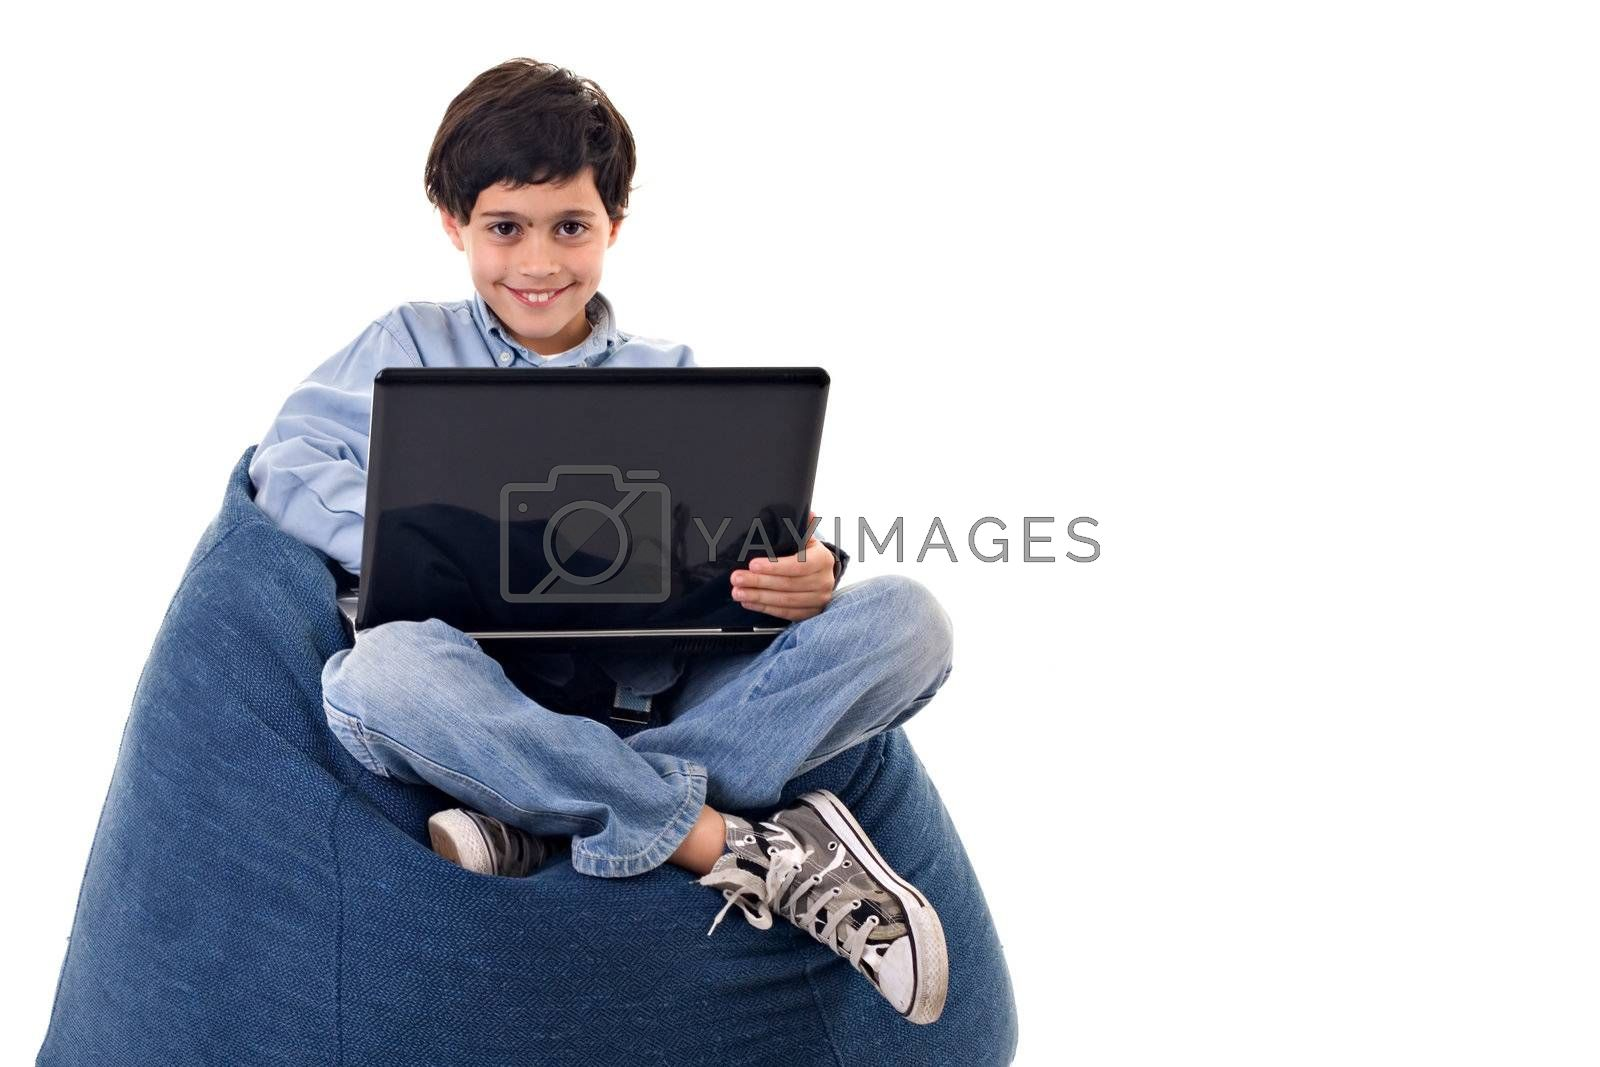 Cute kid sitting using a laptop over white background